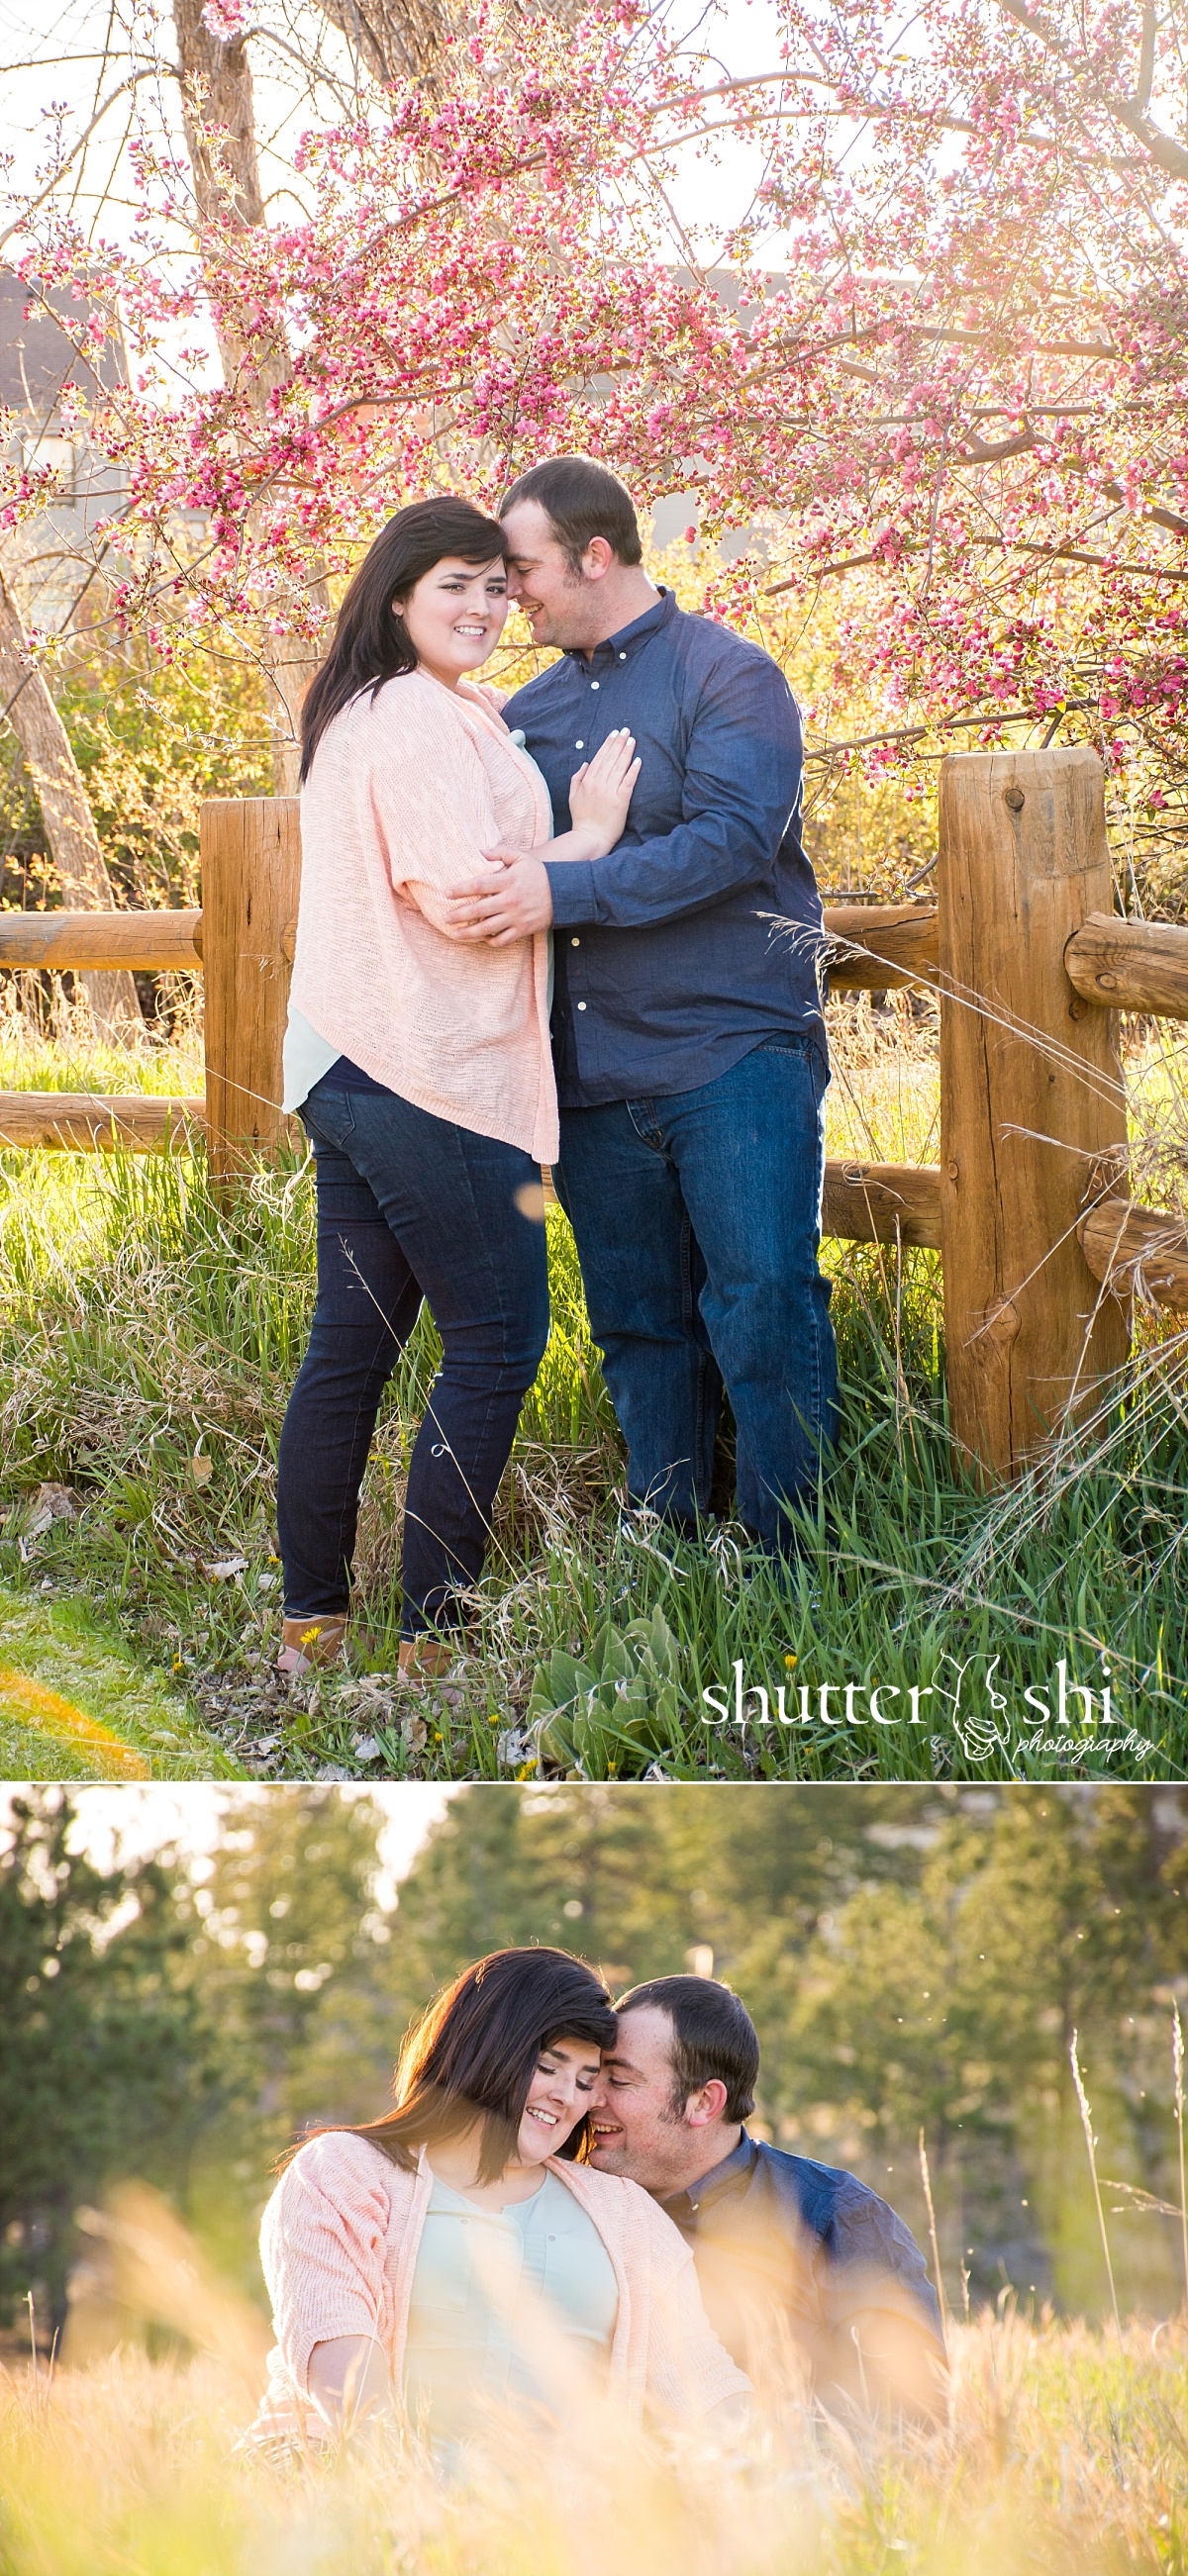 Outdoor Campus West Rapid City Spring Engagement Session Photographer